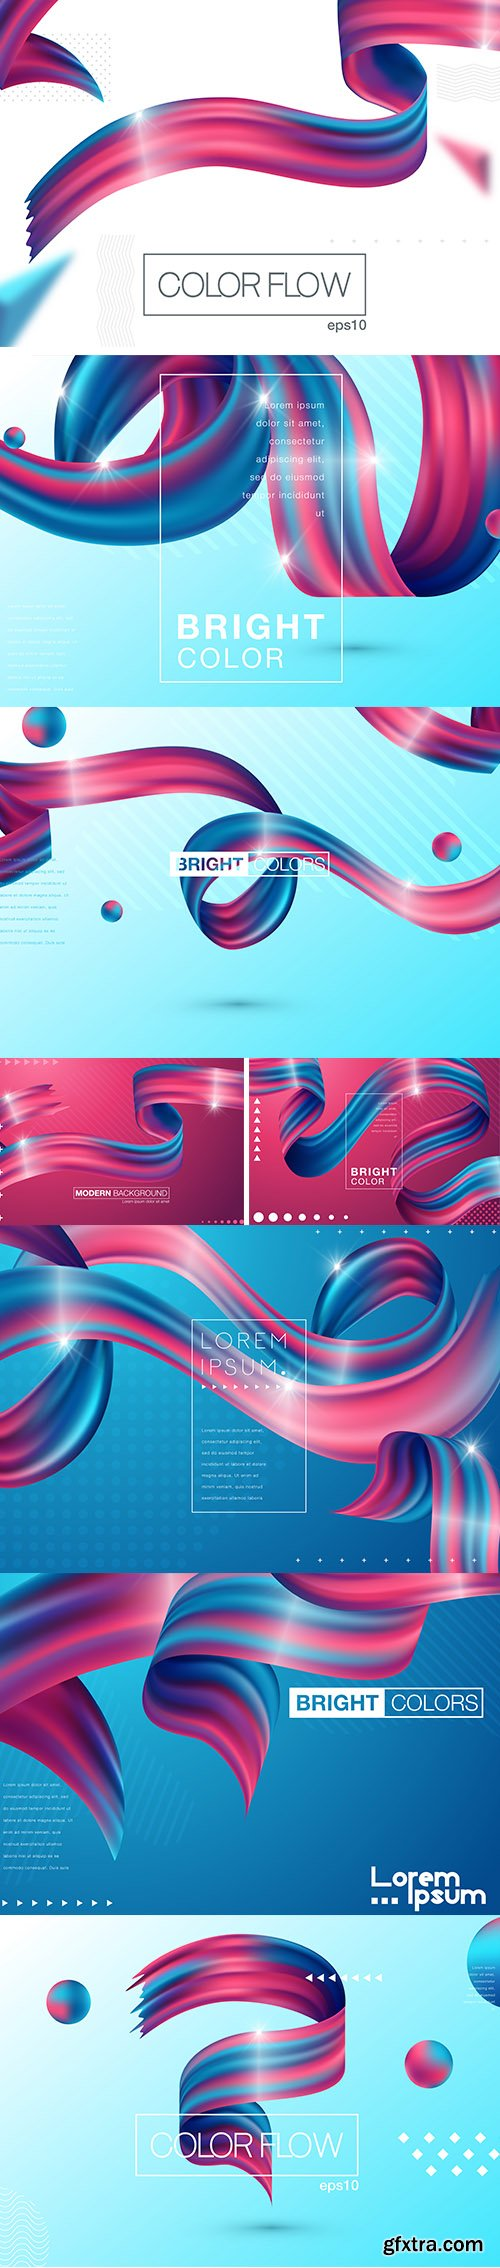 Colorful 3D Flow Shapes Liquid Wave Background Set